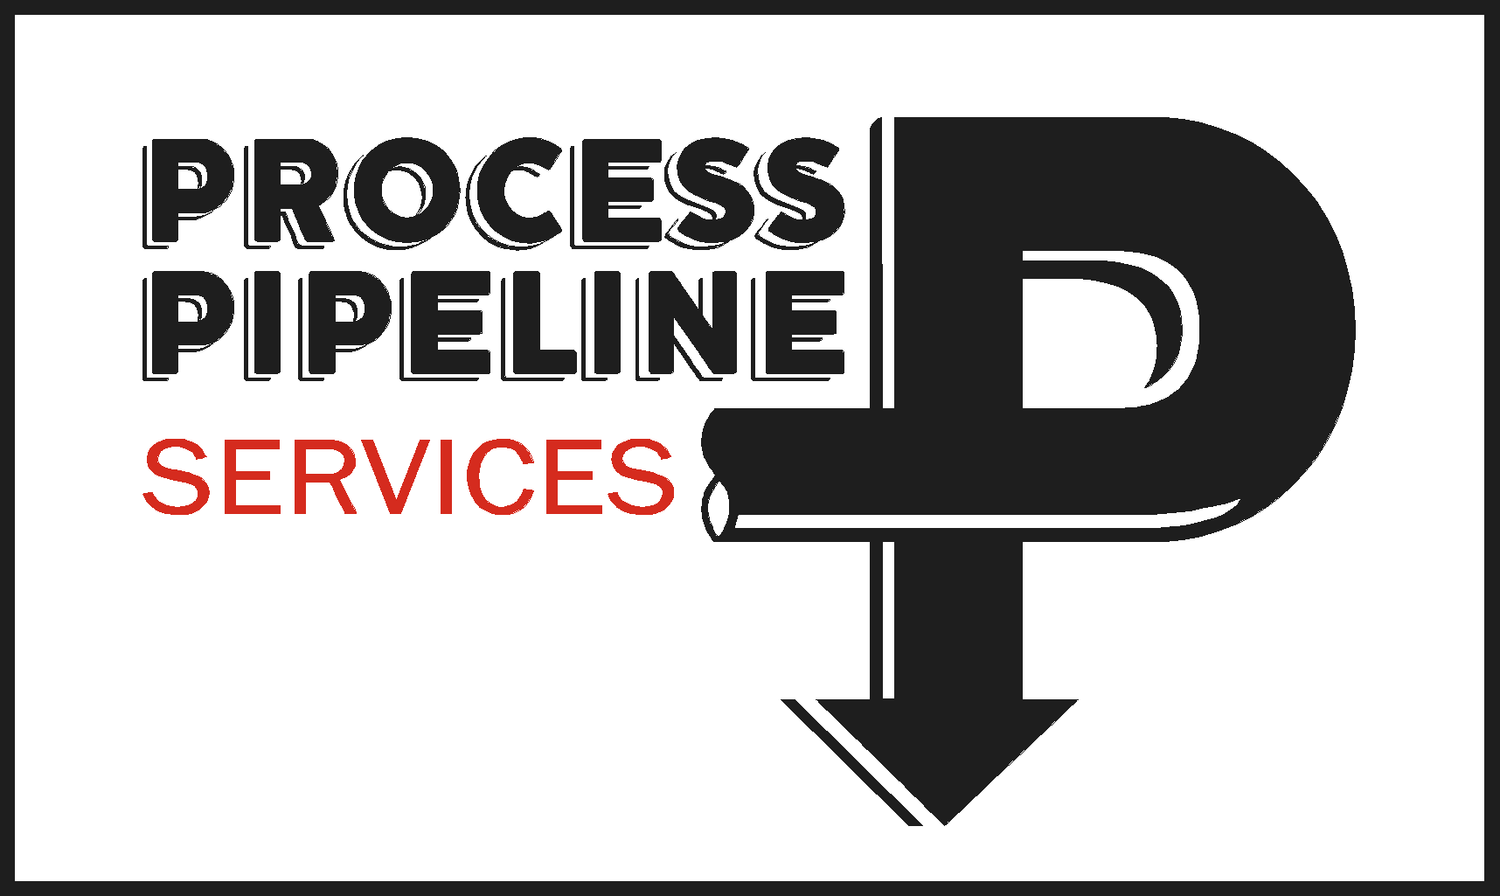 Process Pipeline Services